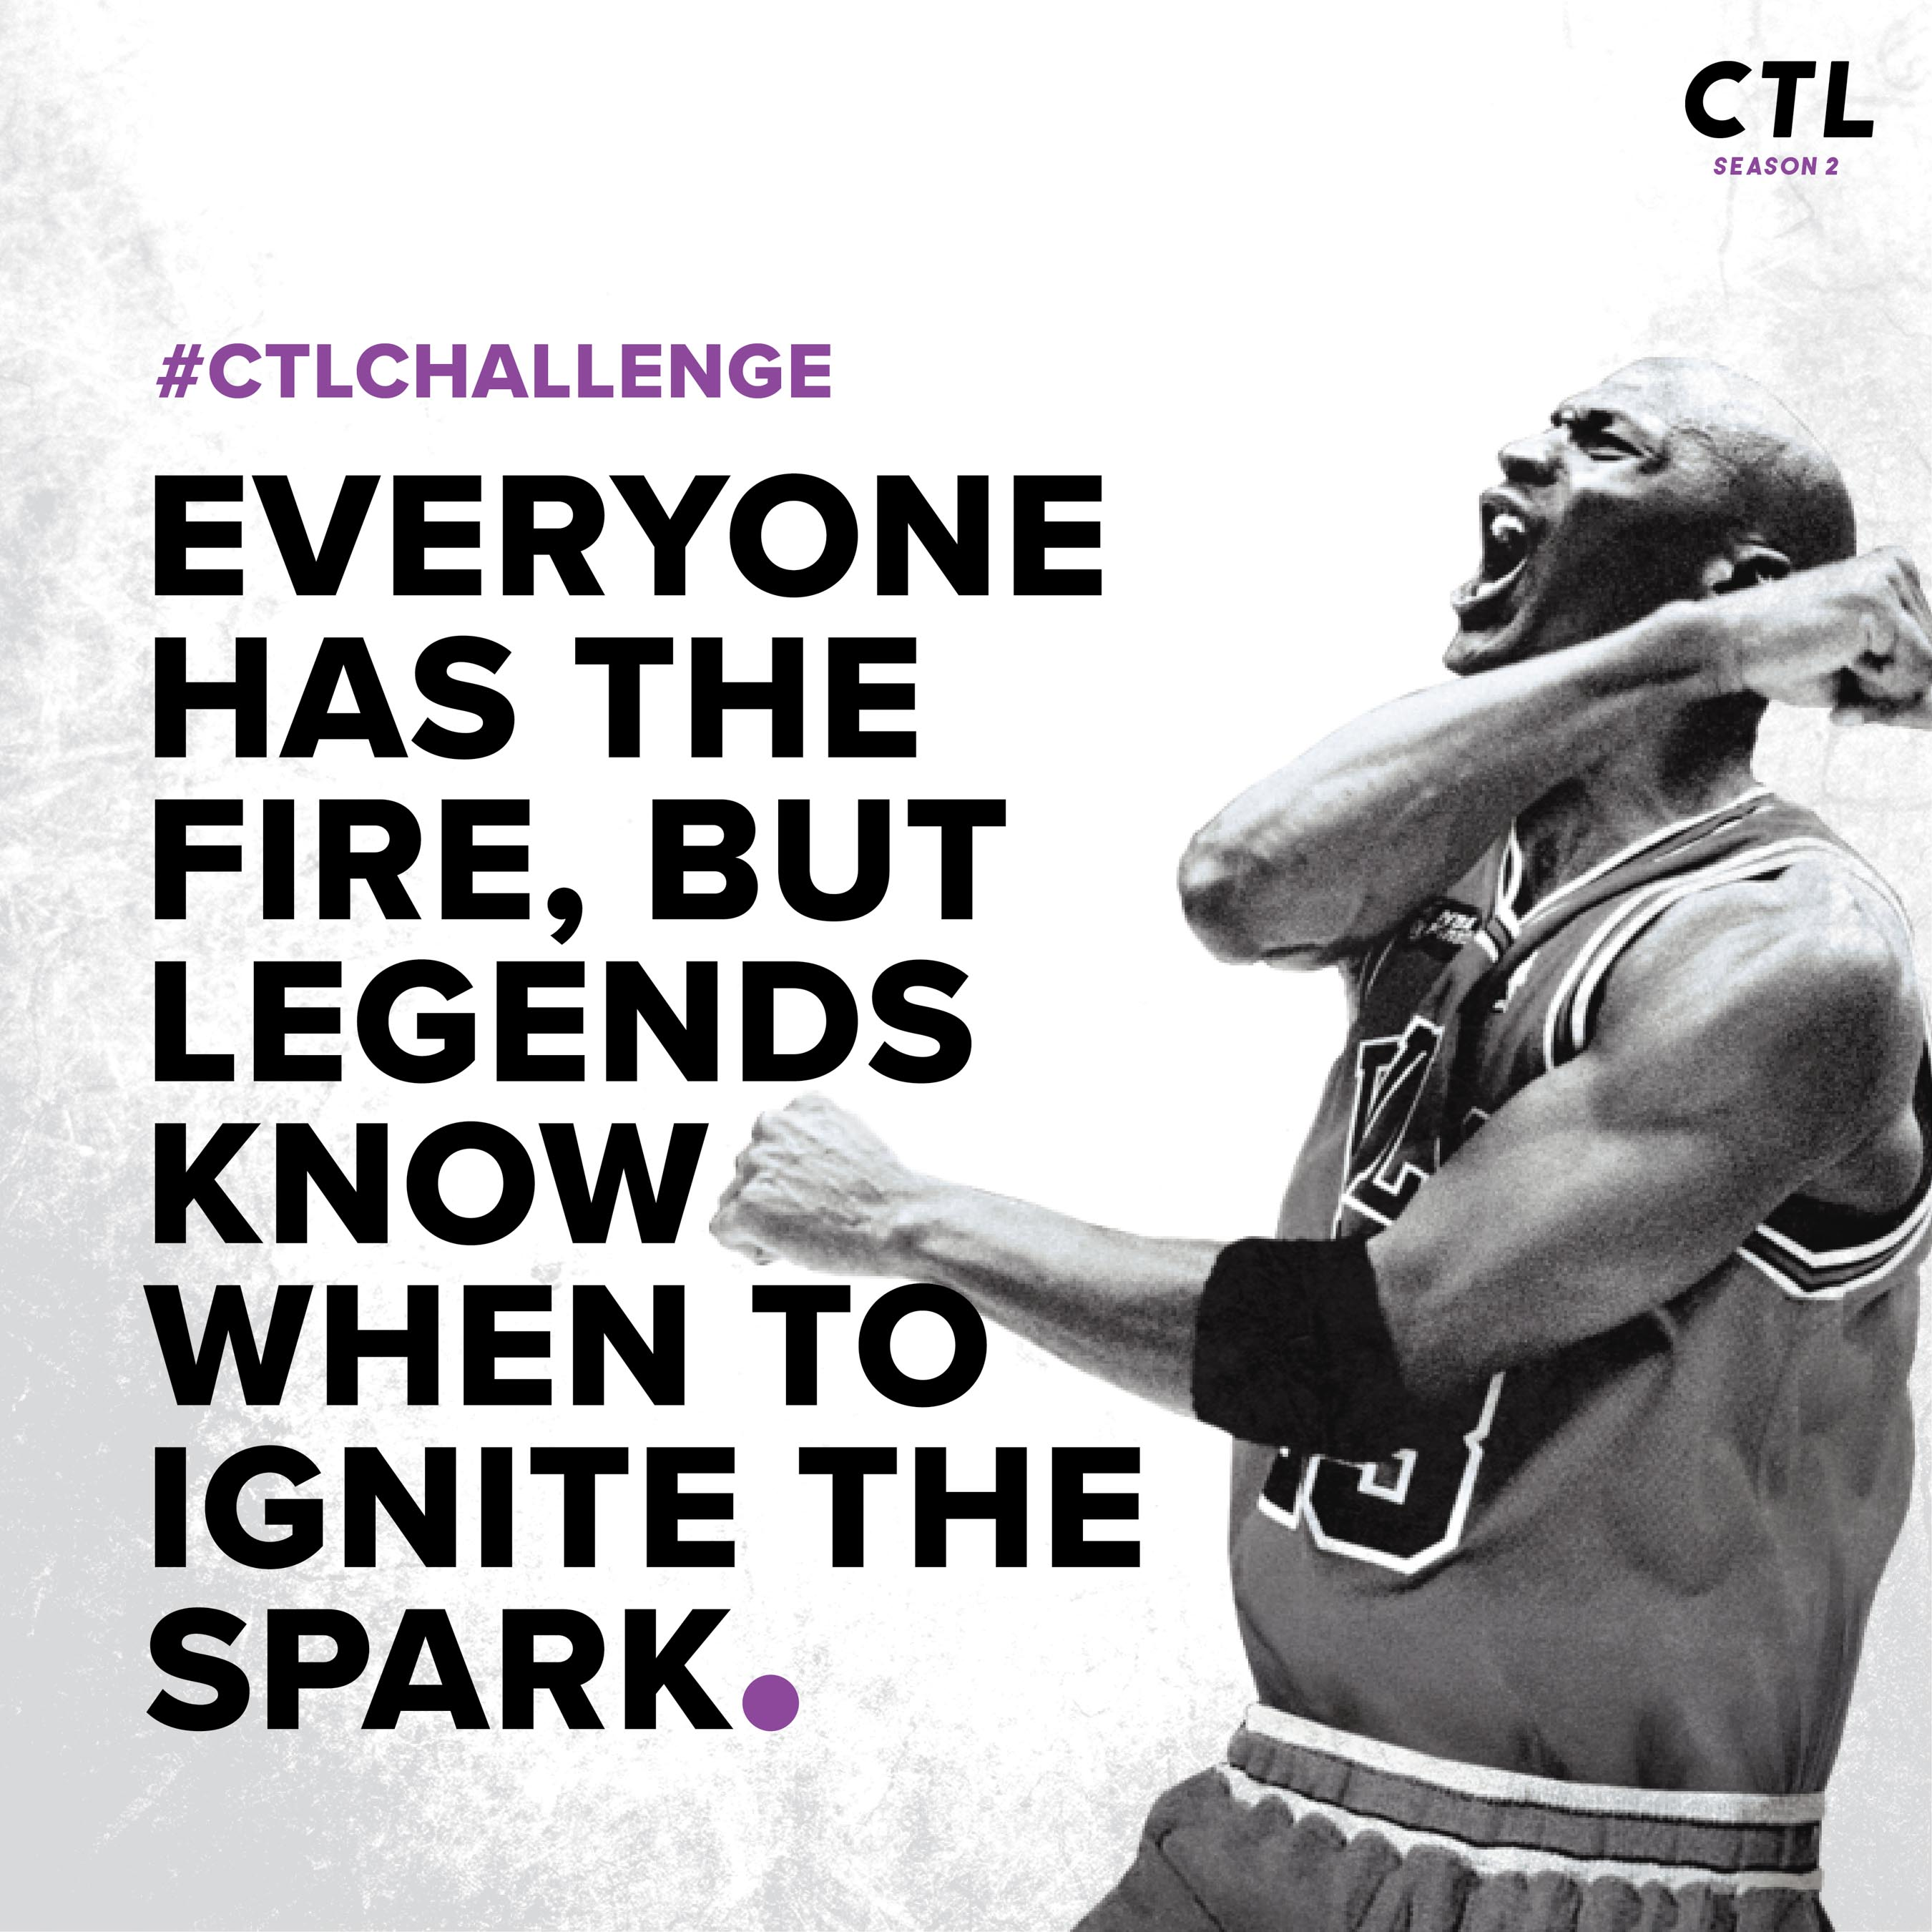 athlete image with text overlay - everyone has the fire, but legends know when to ignite the spark